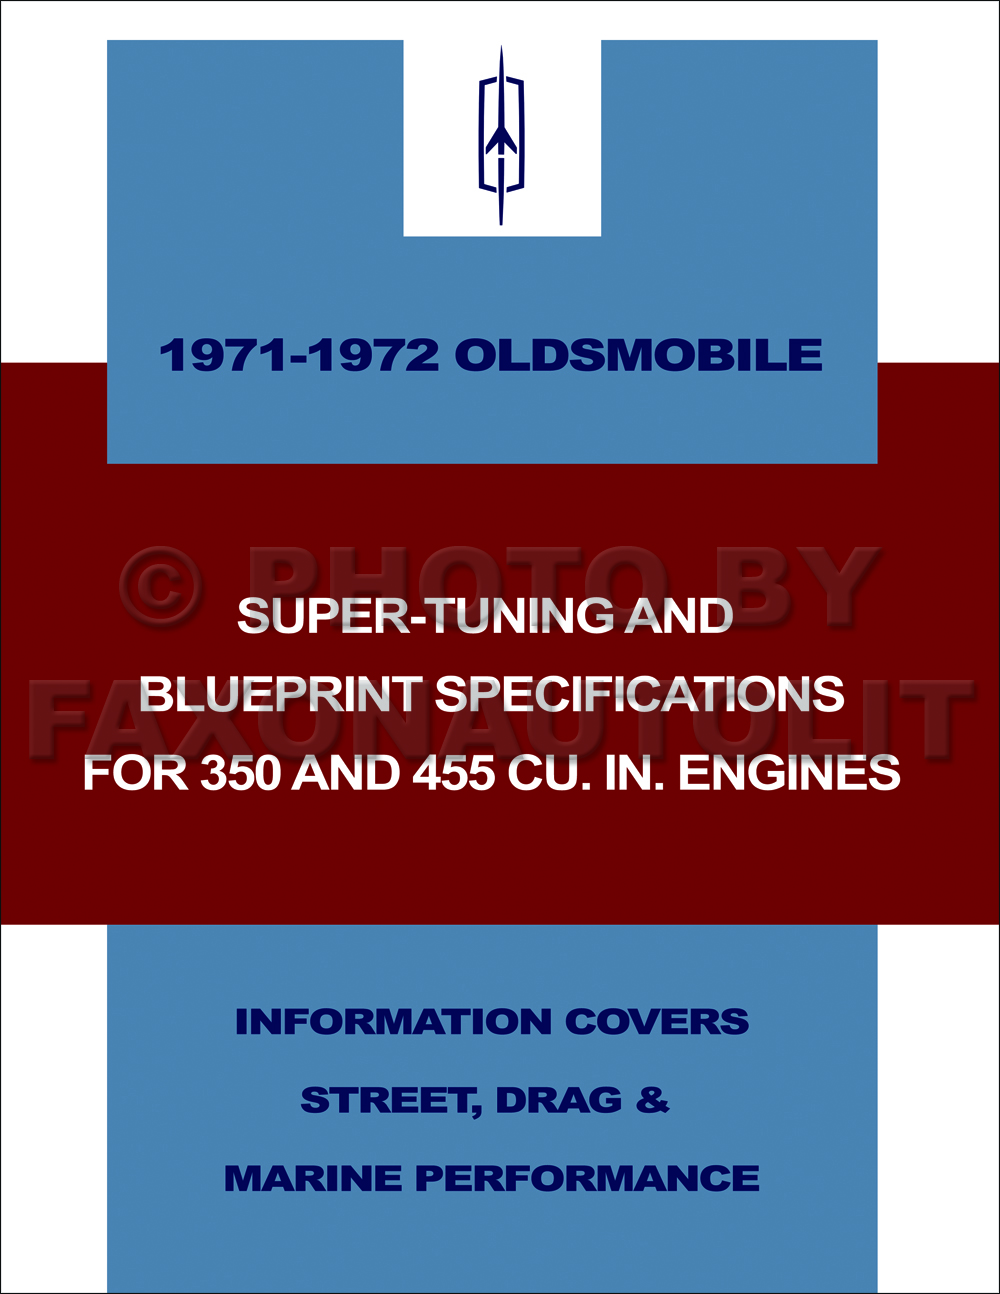 1971-1972 Oldsmobile Super Tuning Blueprinting Manual 350 & 455 Cu. In. Engines